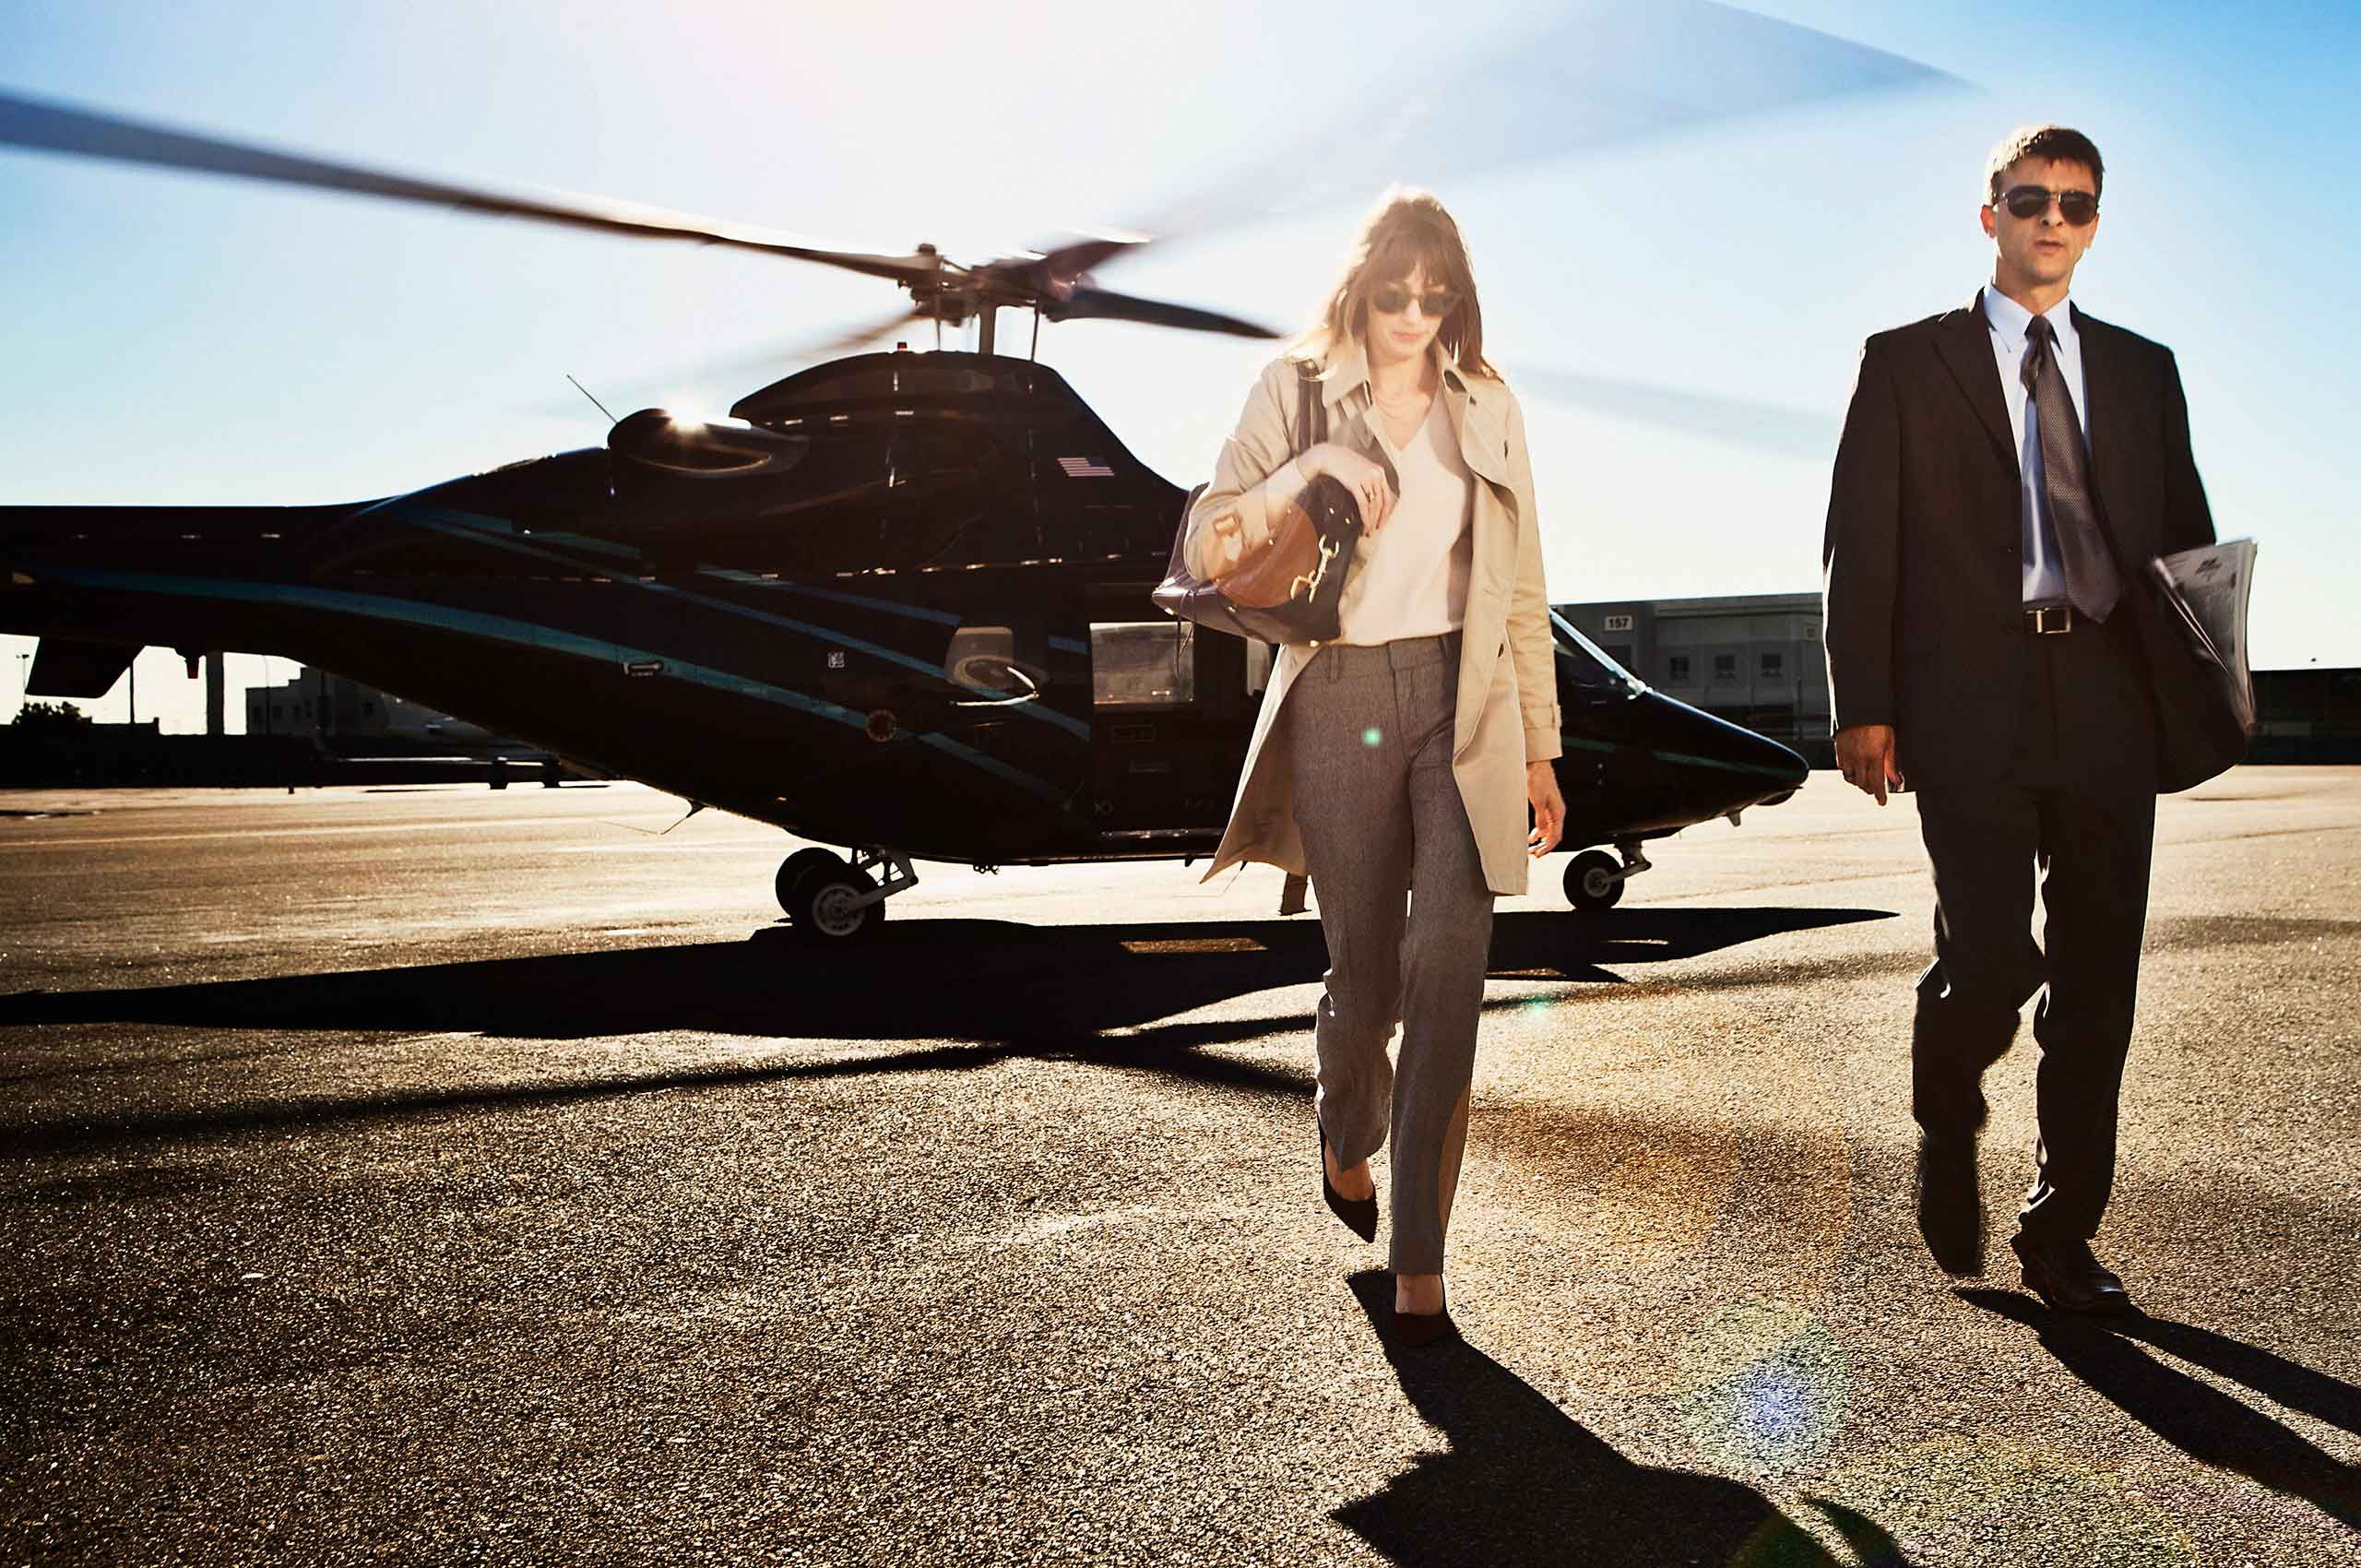 Businesswoman-exiting-helicoper-by-HenrikOlundPhotography.jpg